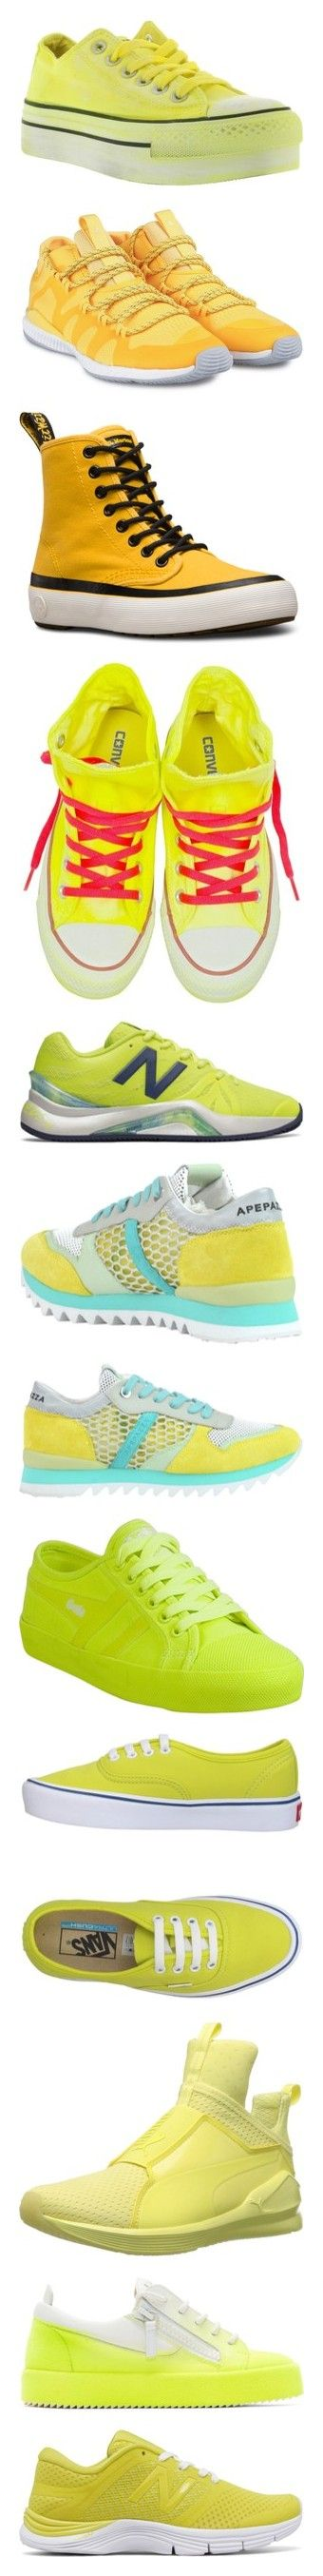 """brillá"" by dairarosario on Polyvore featuring shoes, sneakers, womenshoessneakers, yellow, star sneakers, converse footwear, yellow platform shoes, yellow sneakers, converse trainers y giallo"